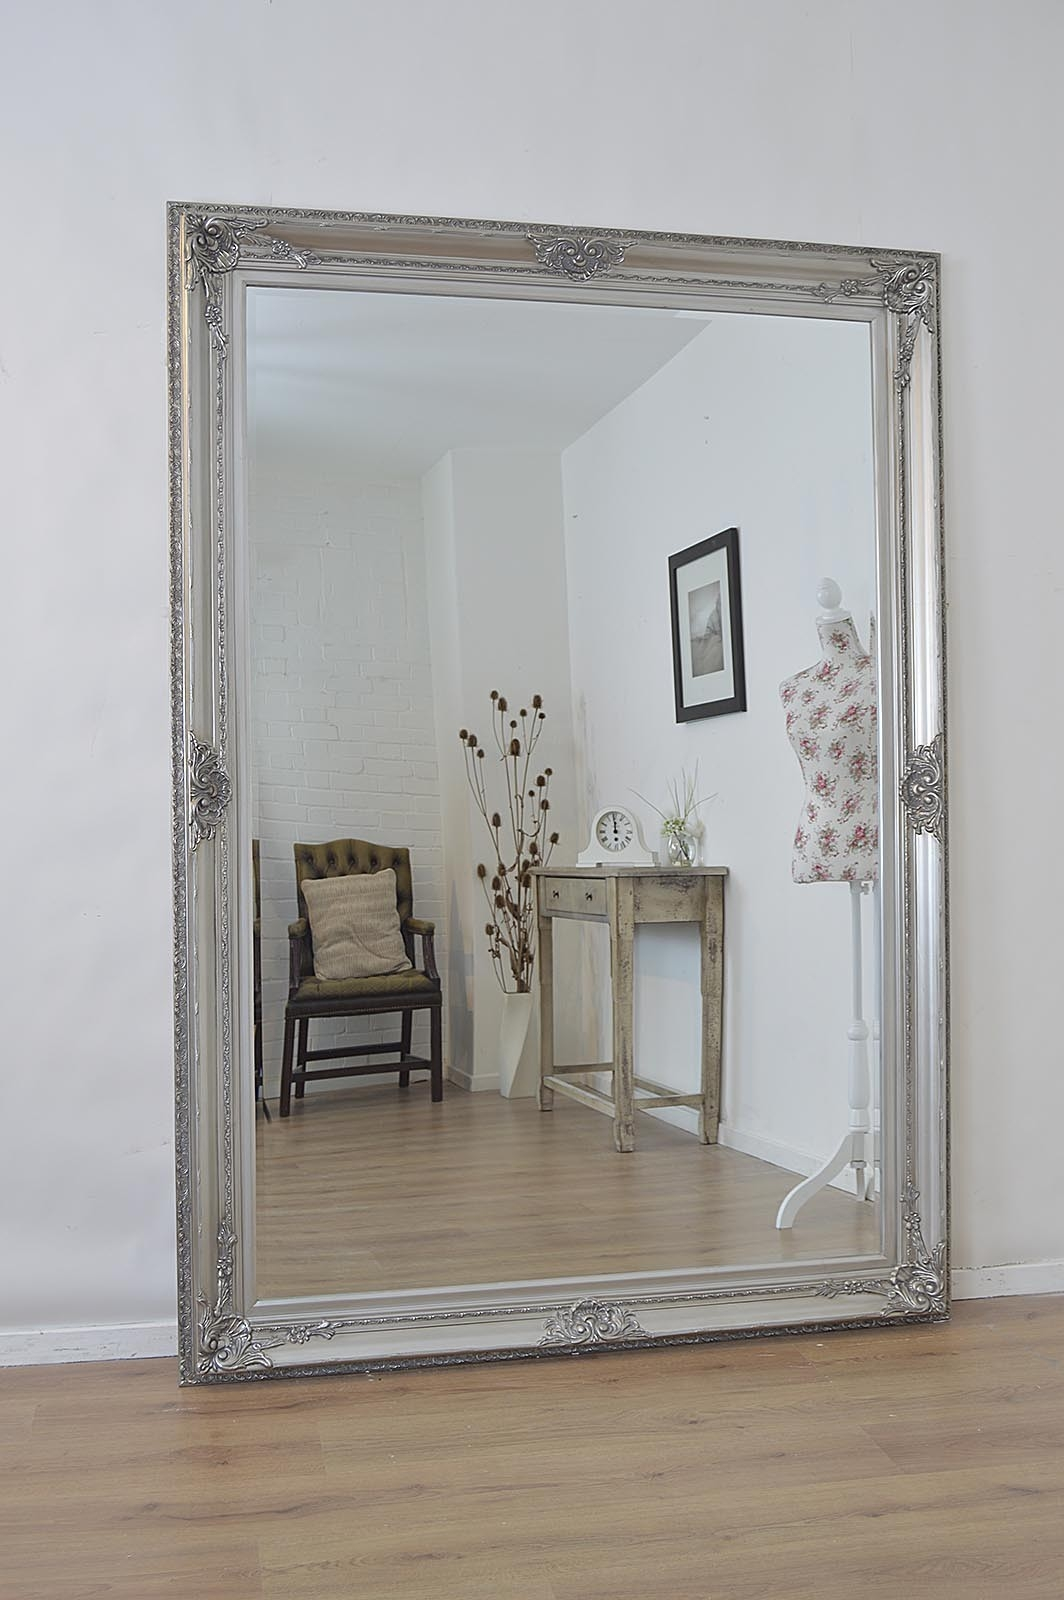 Wonderful Decoration Standing Wall Mirror Absolutely Design Big With Regard To Big Standing Mirror (View 2 of 15)